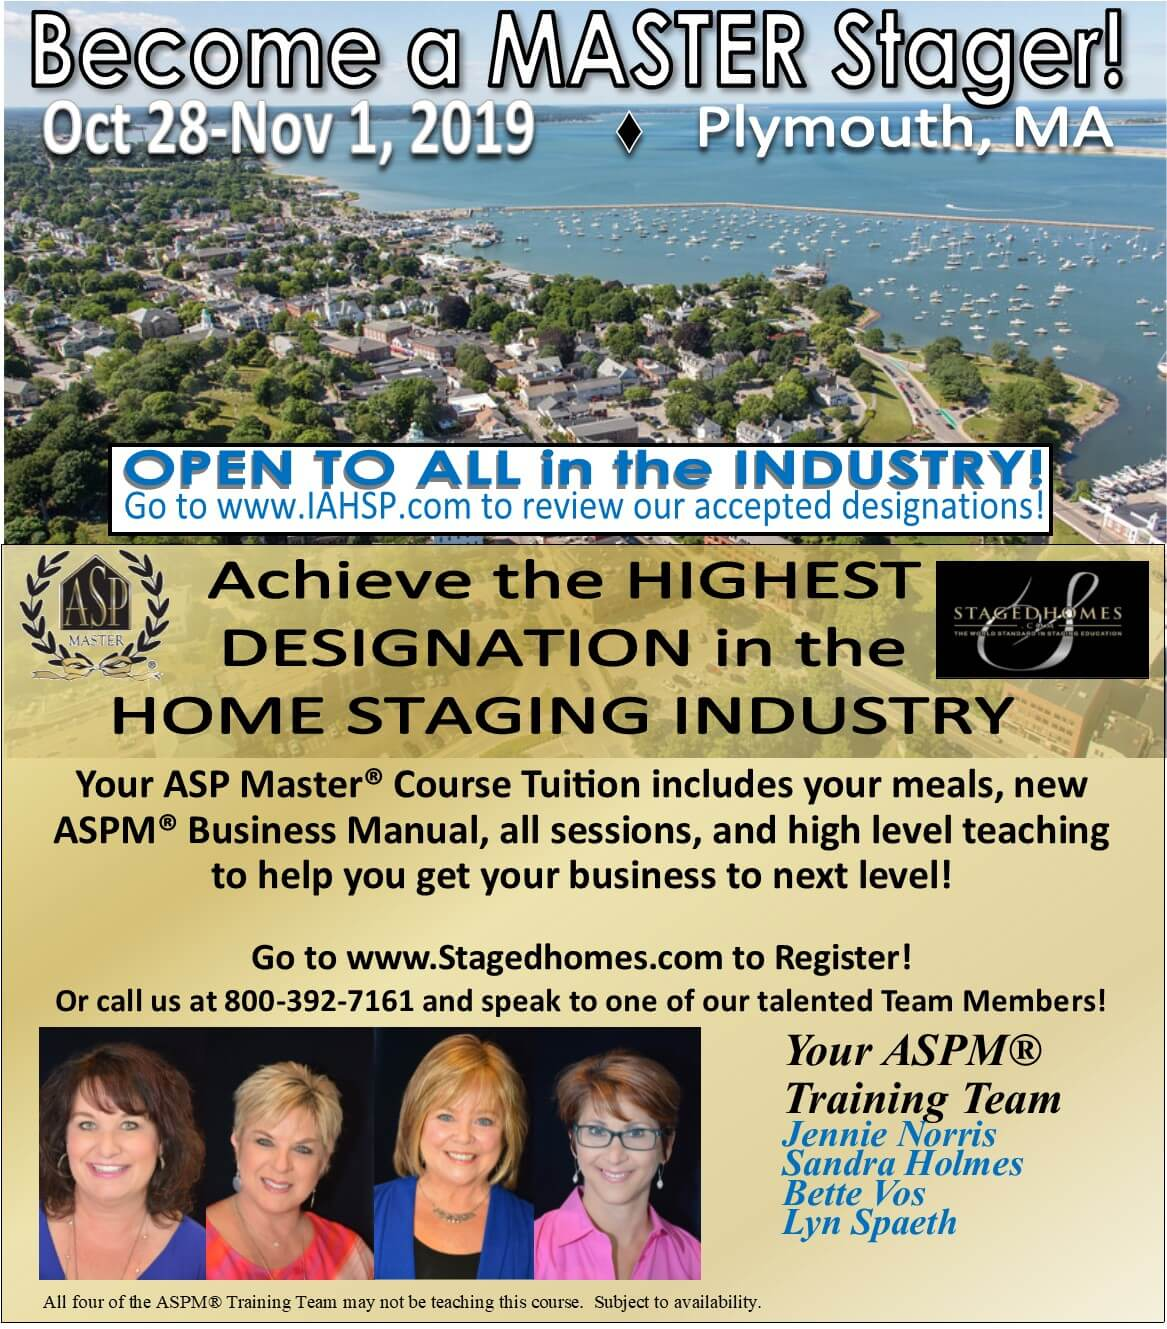 Become a MASTER Stager promo flyer